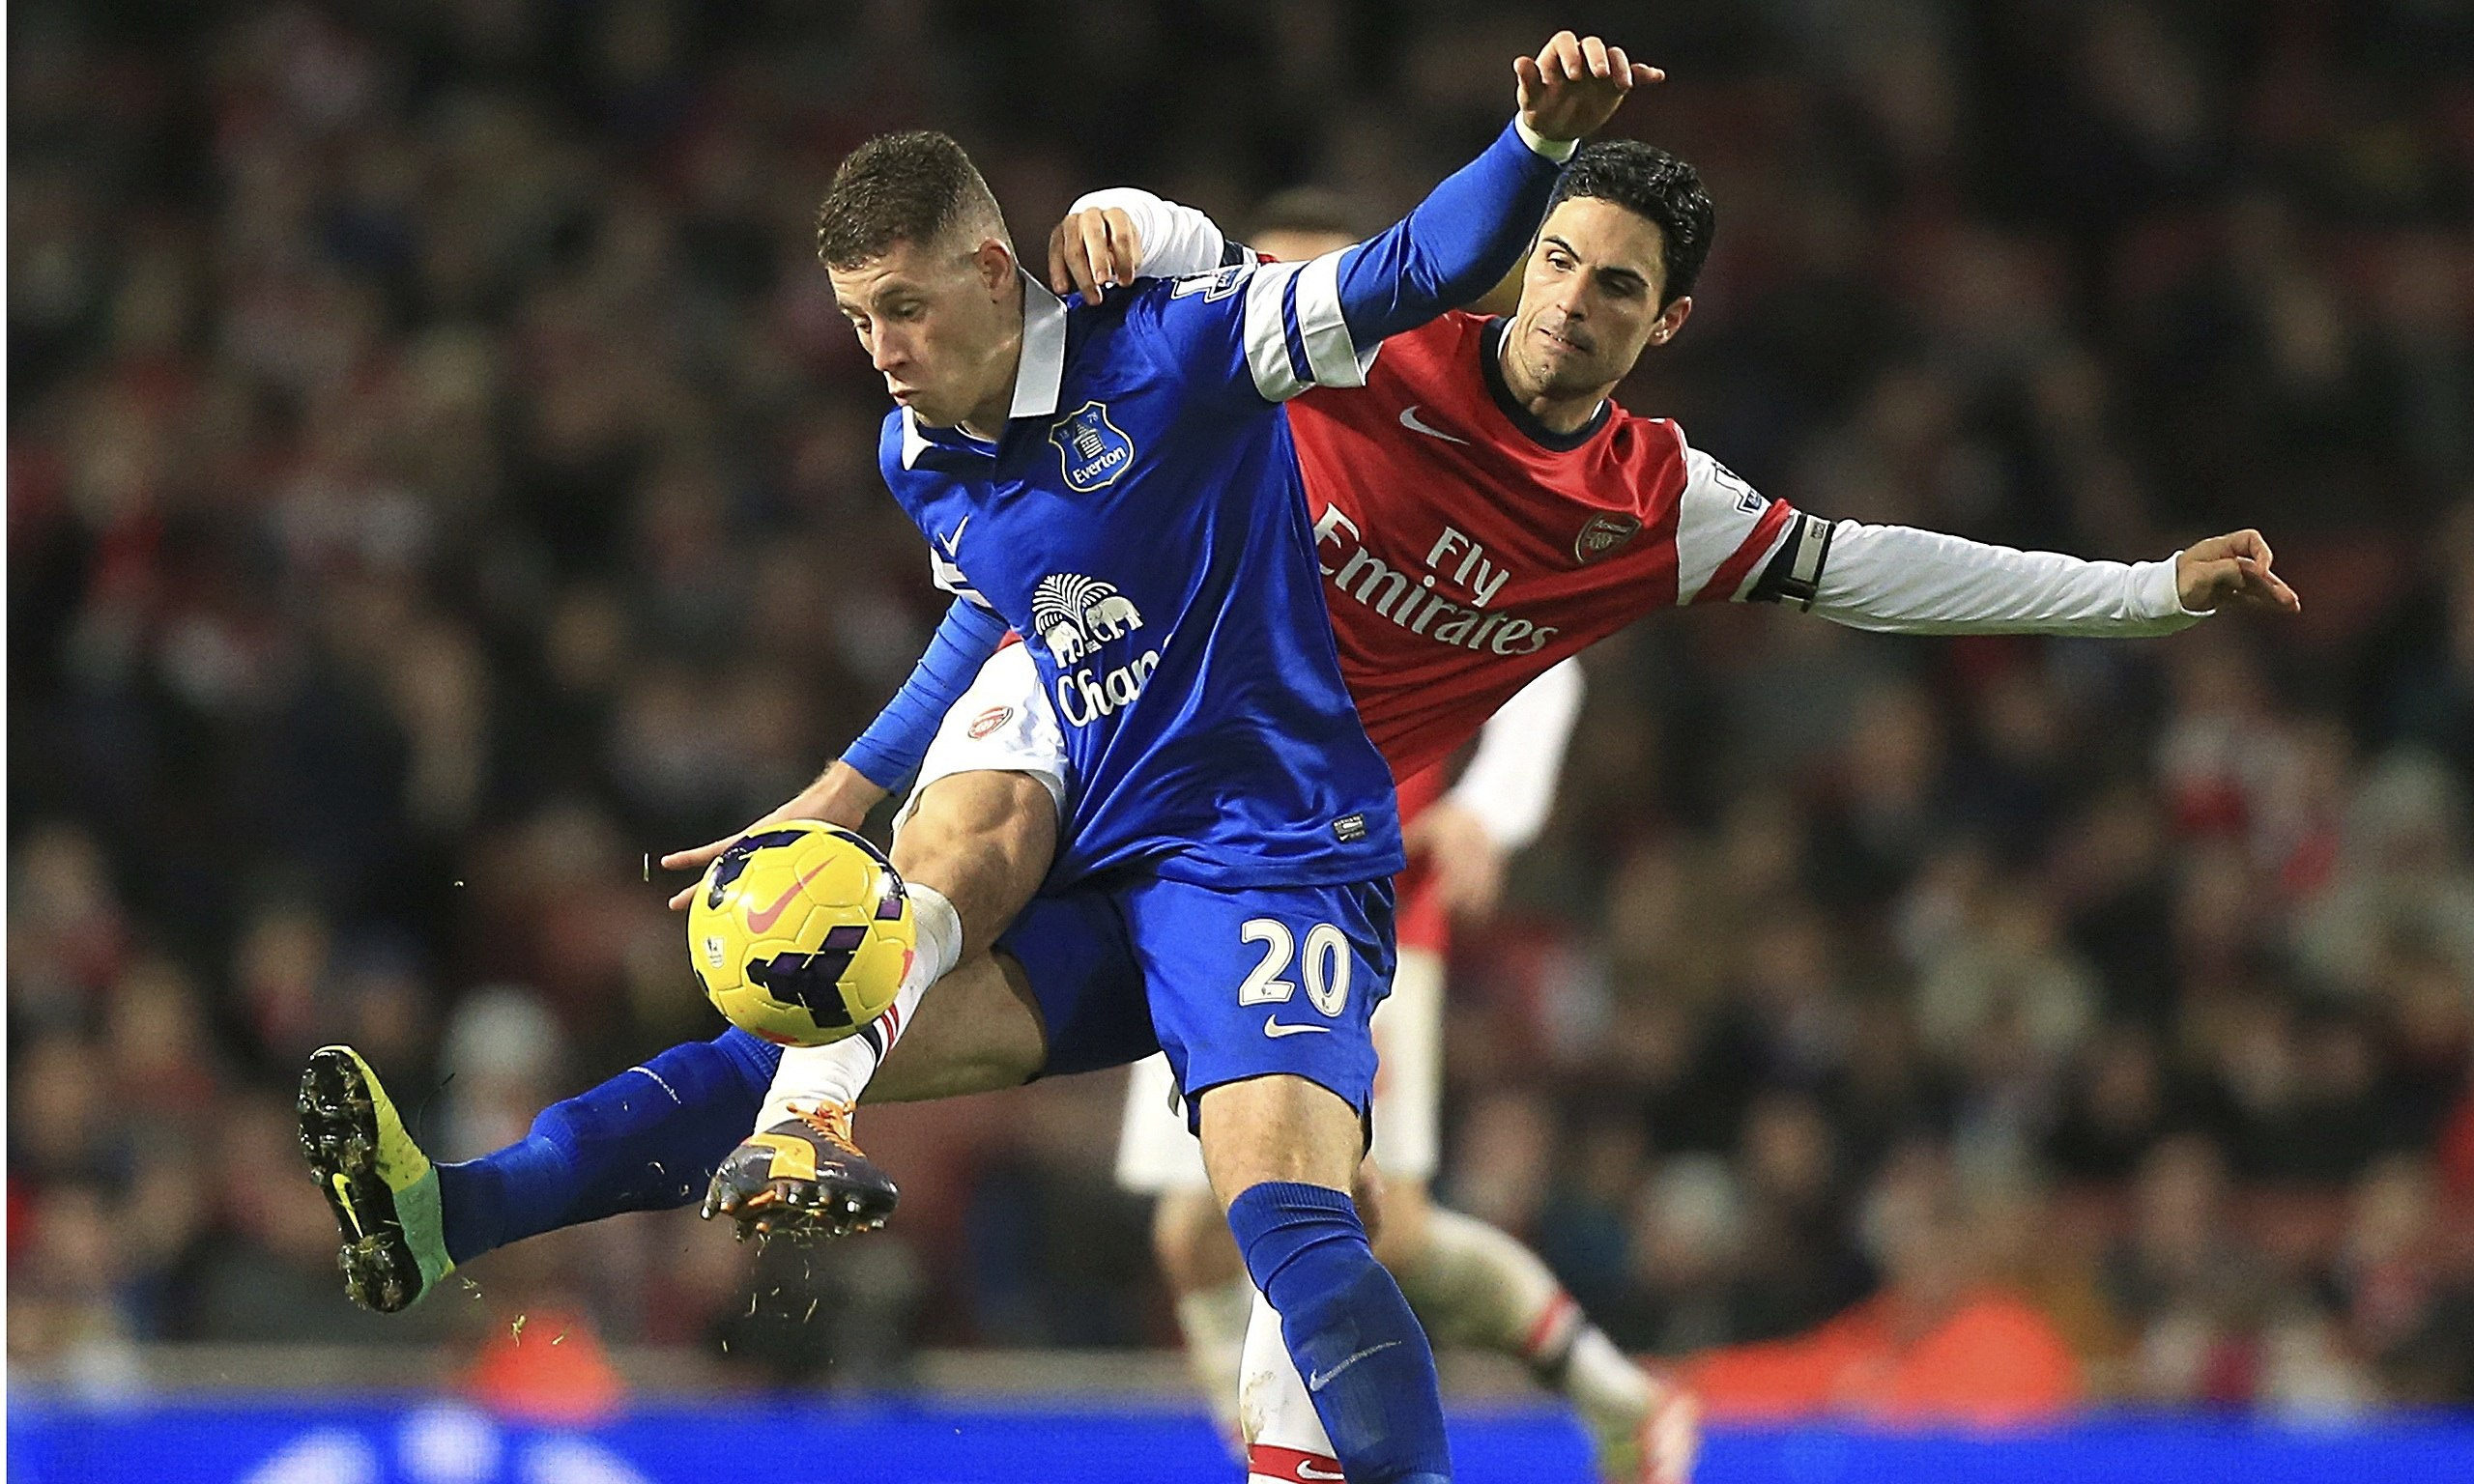 Everton's Ross Barkley vs Arsenal's Mikel Arteta